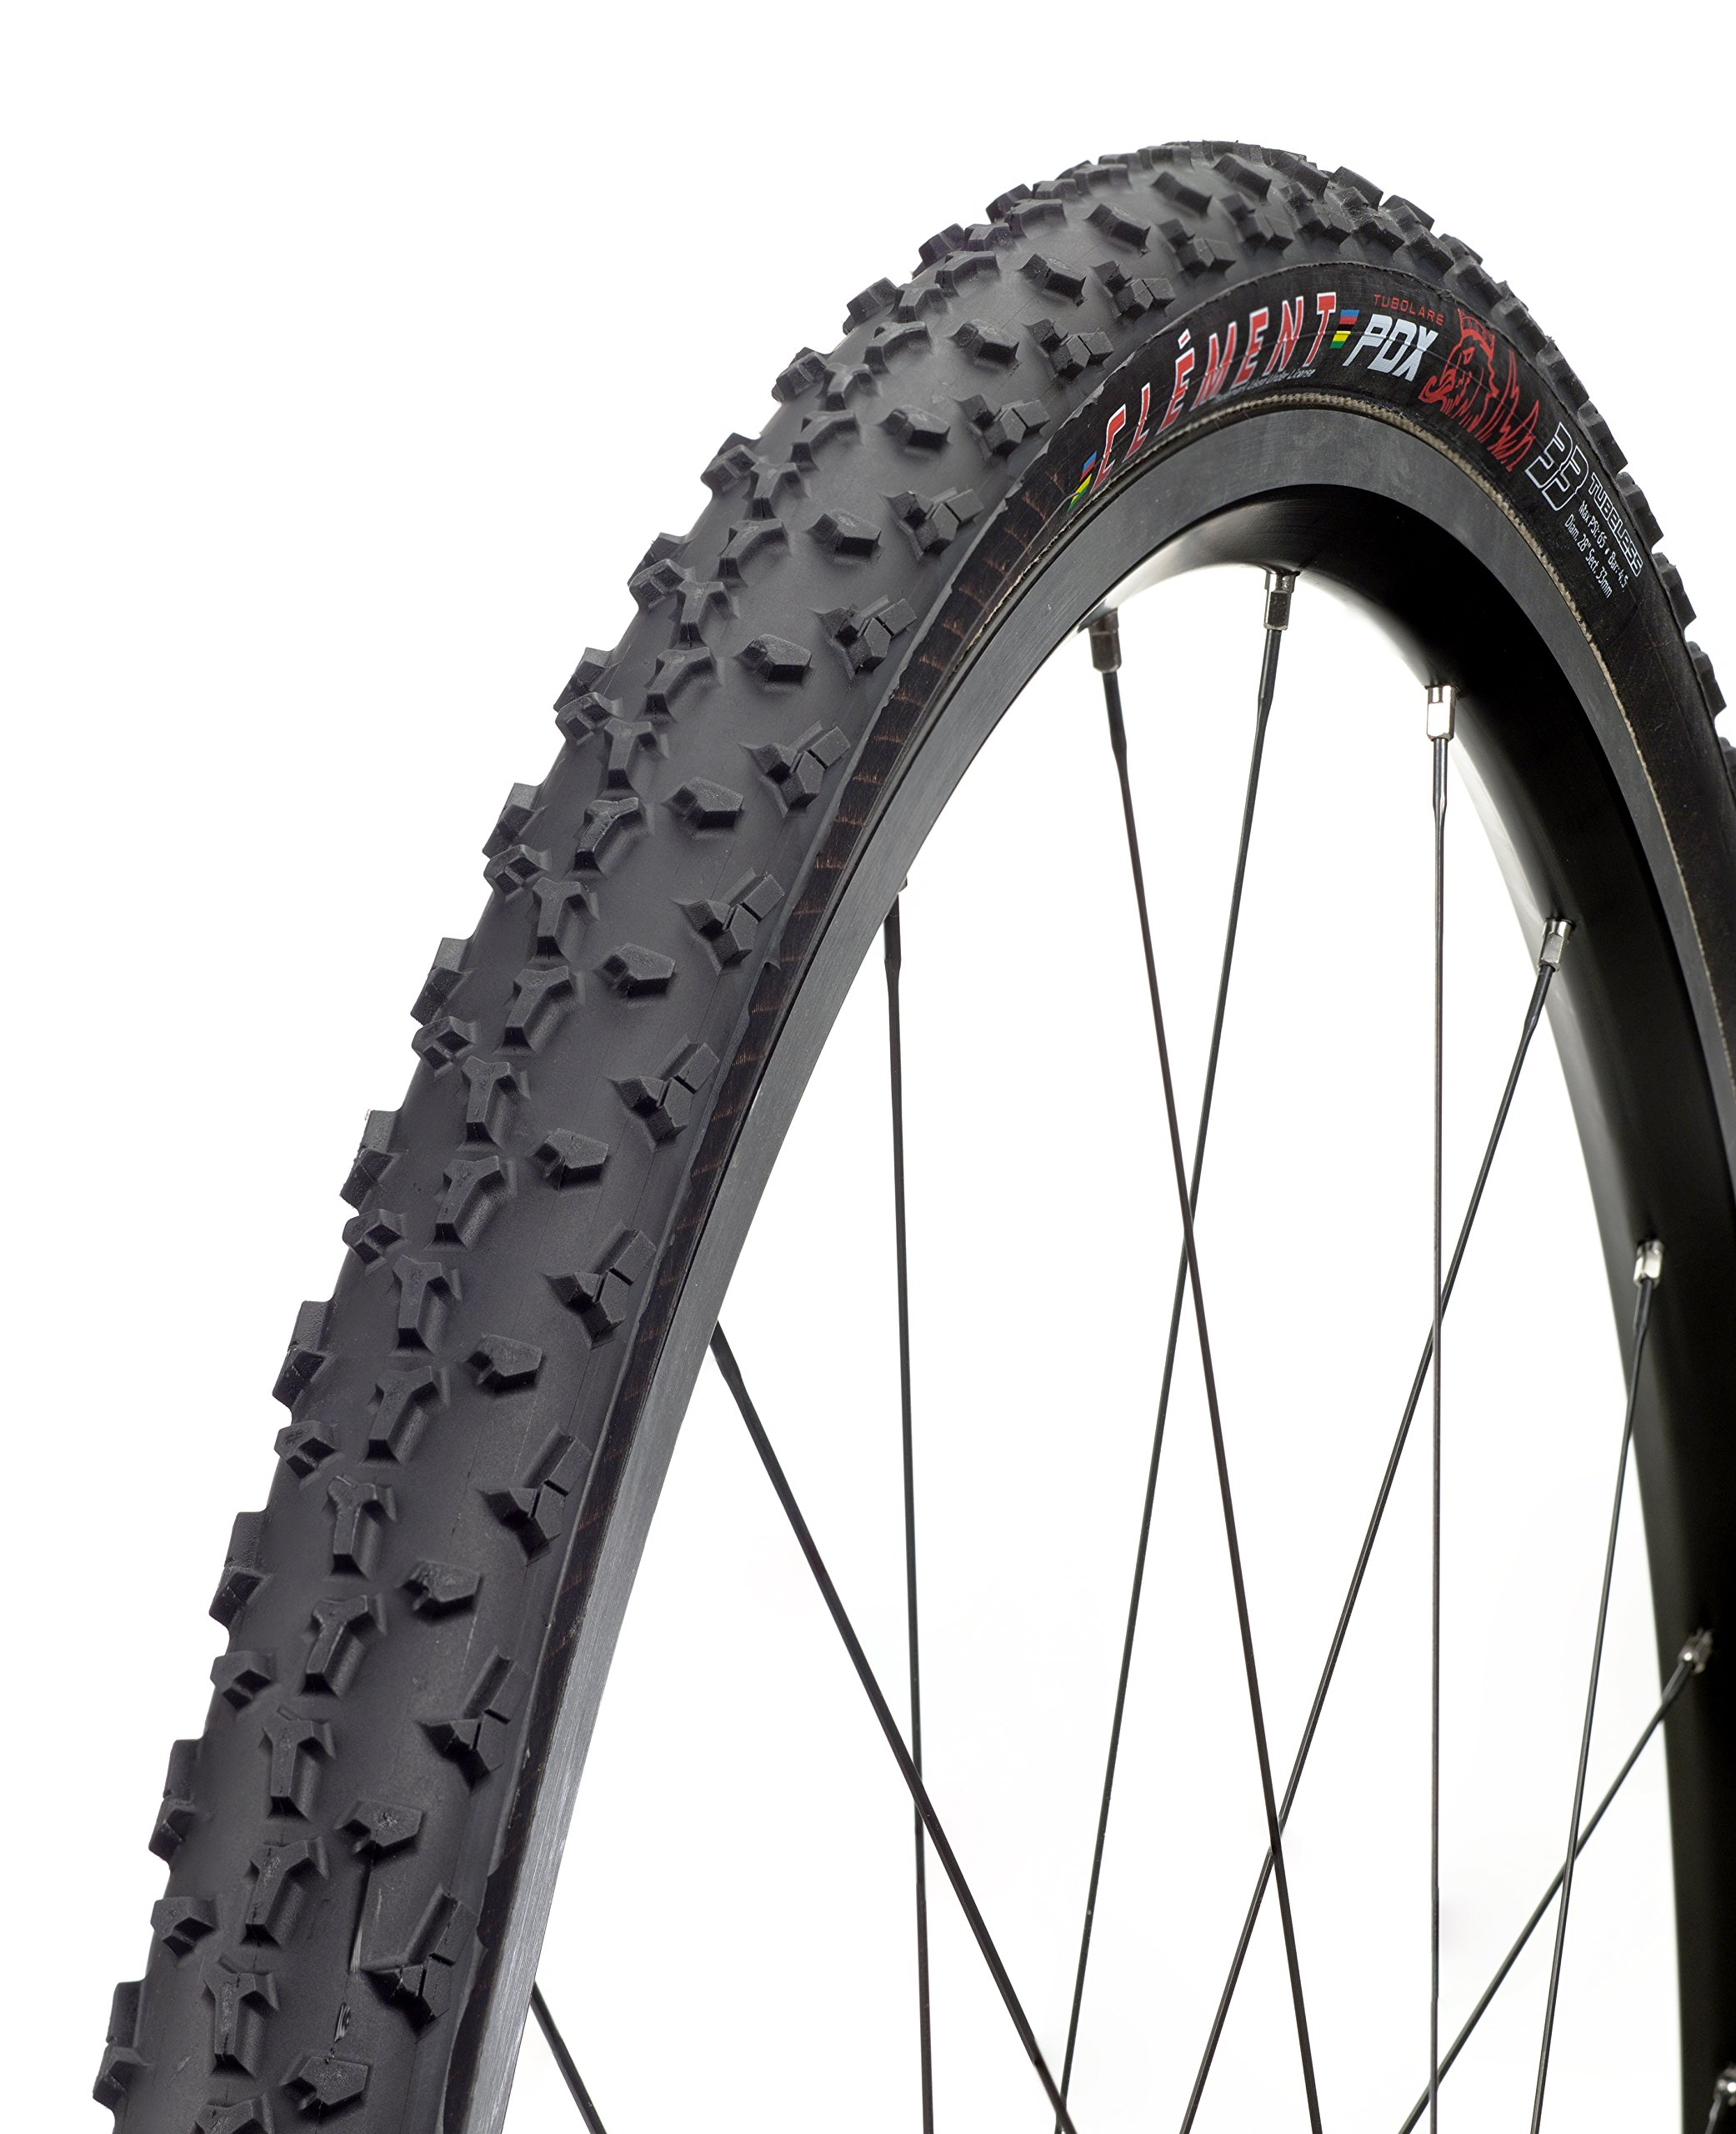 Clement Cycling PDX Tubular Tire, Size: 700cm x 33mm